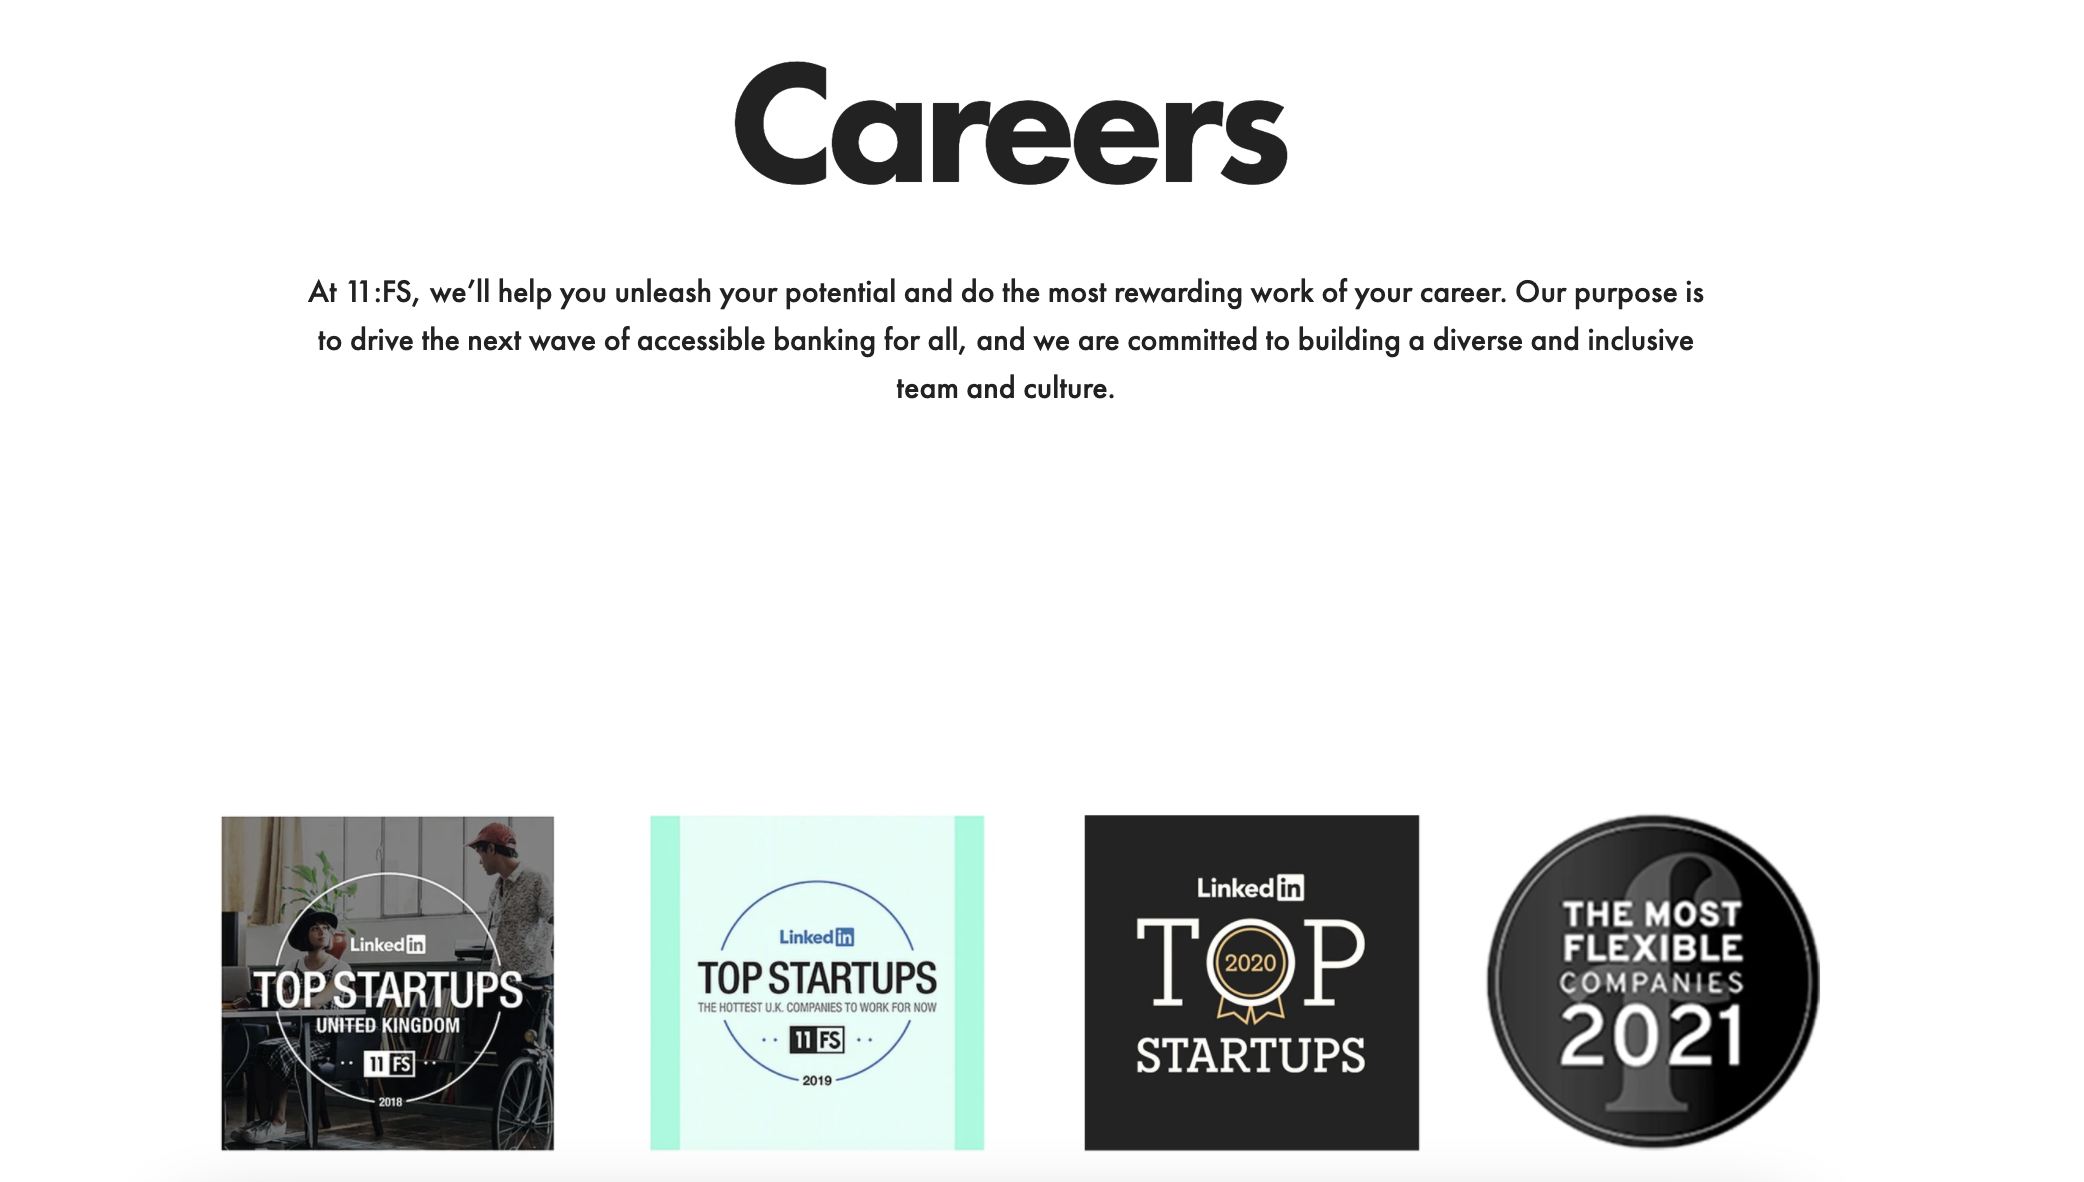 """11:FS's careers page displaying the black """"most flexible companies"""" stamp"""